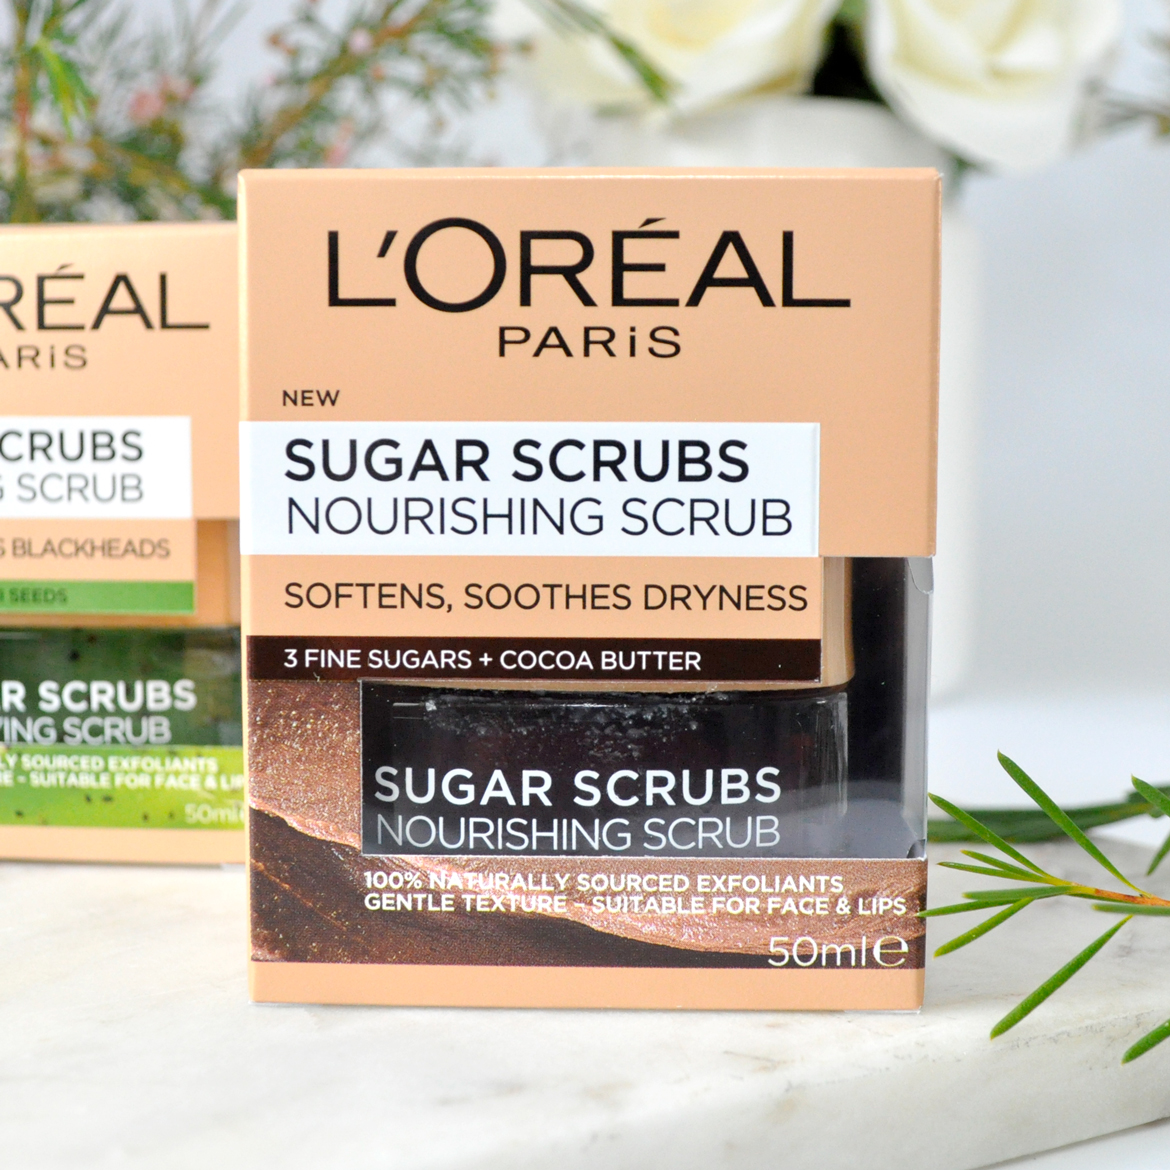 L'Oréal Paris Sugar Scrubs Nourishing Scrub